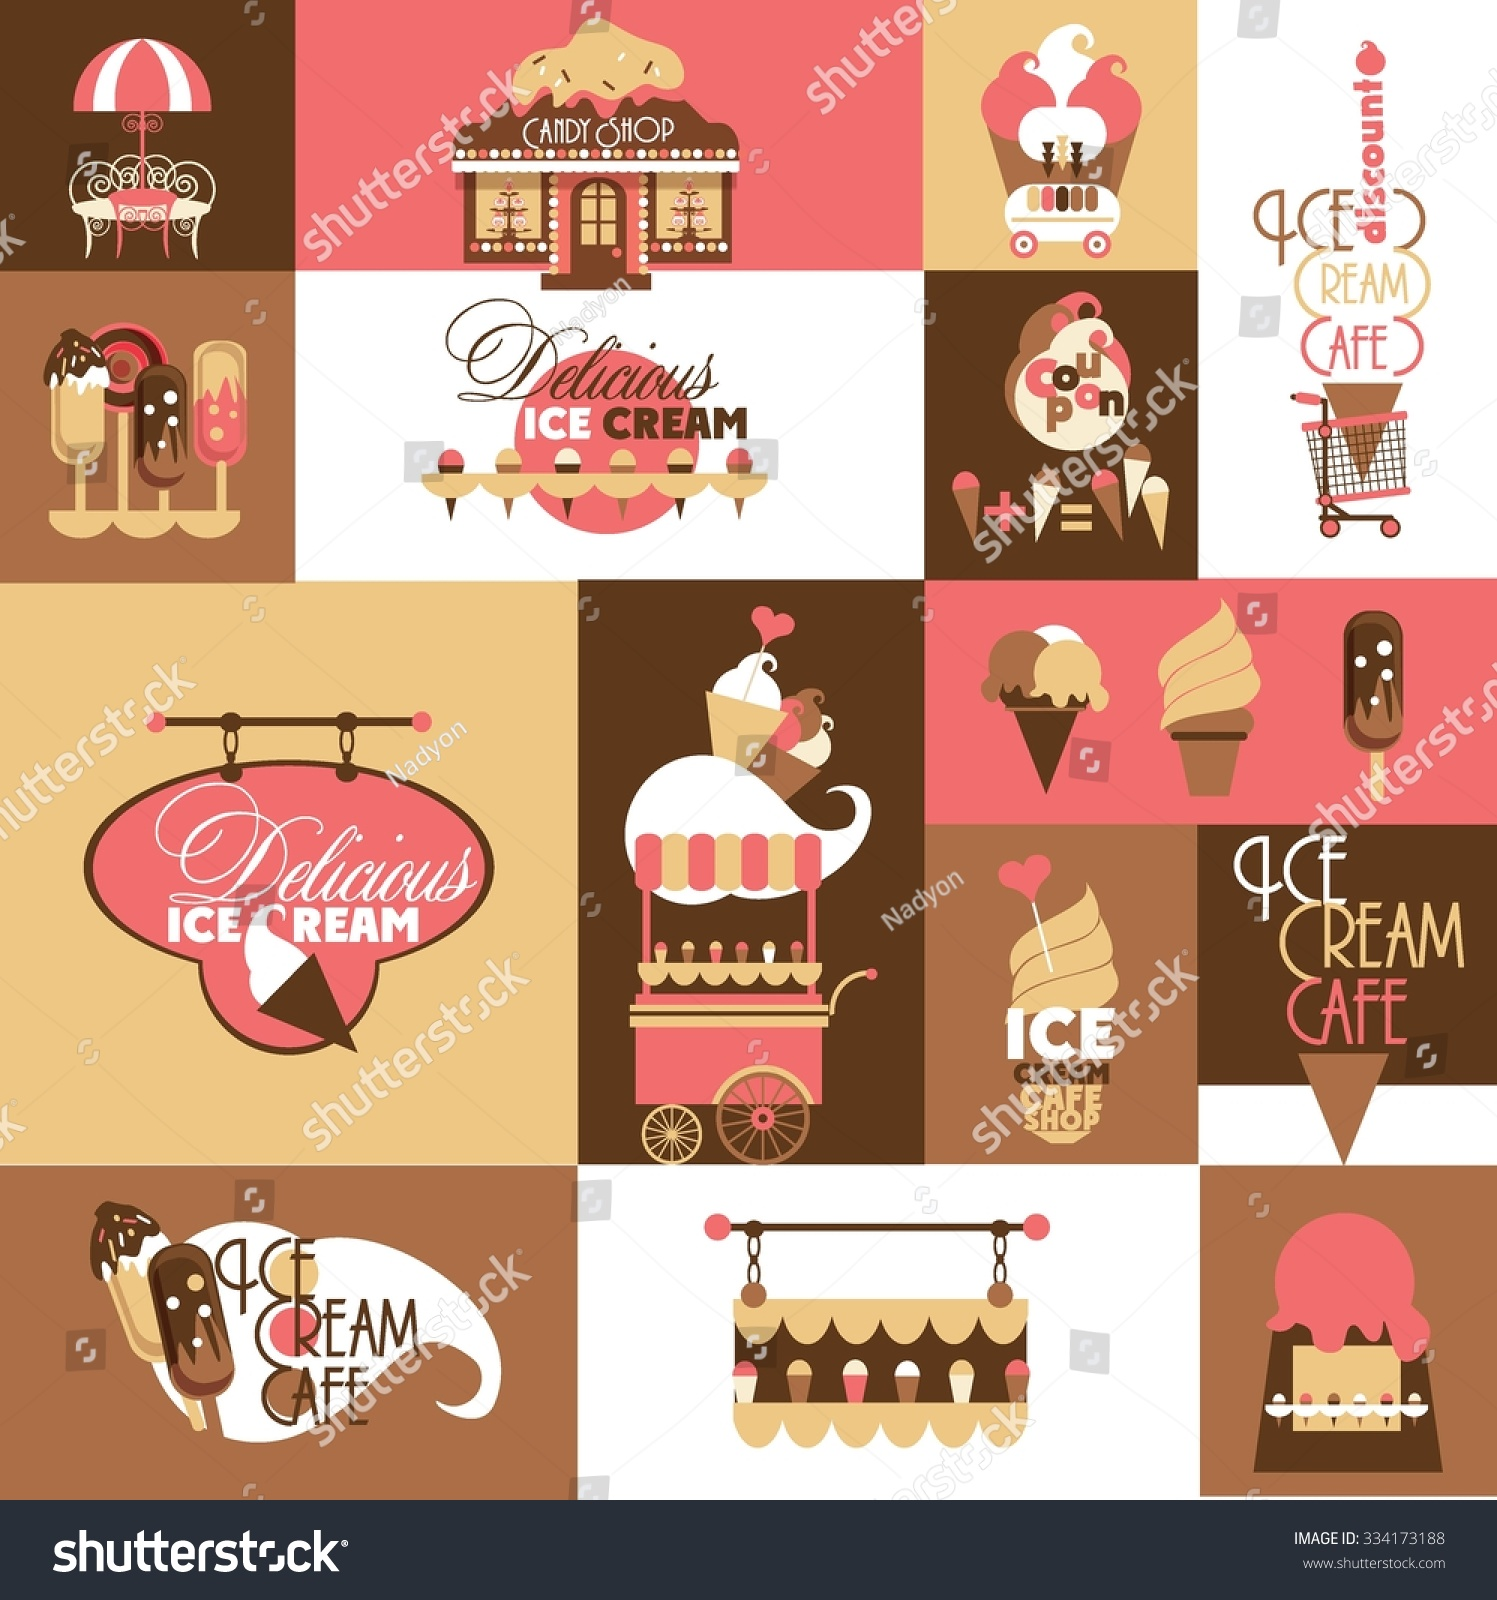 Cute Carer Business Discount Card Pictures Inspiration - Business ...